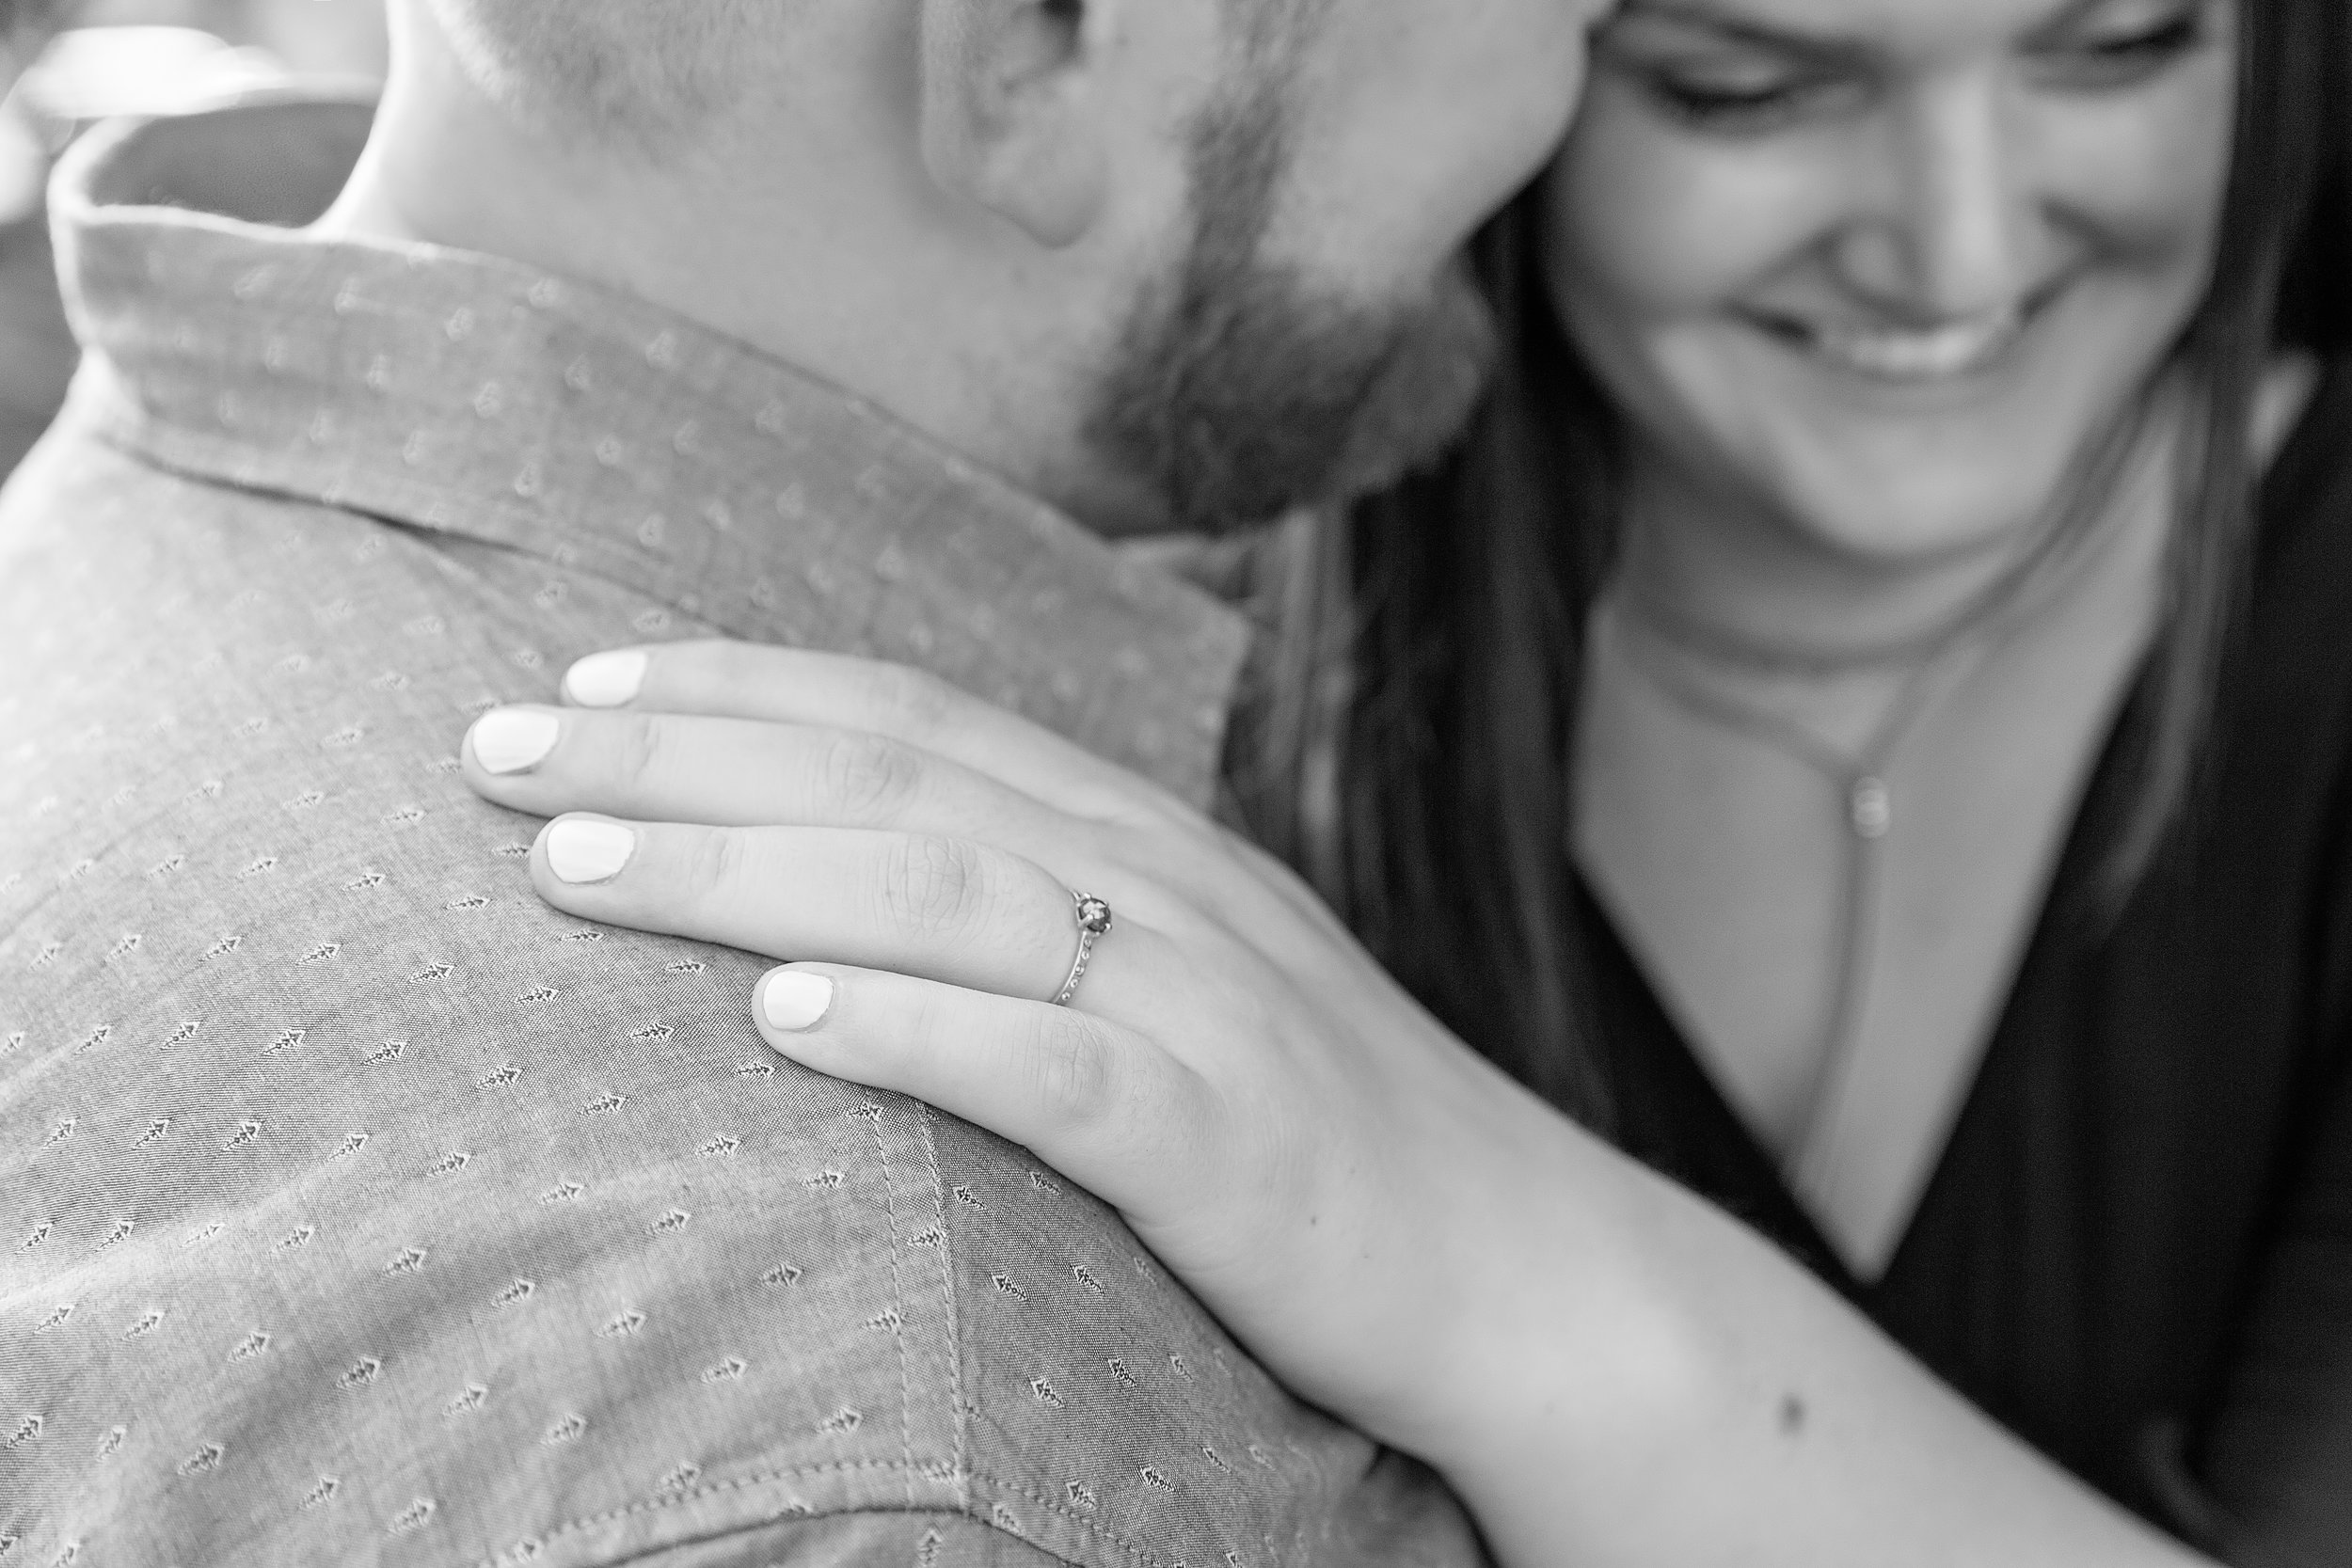 close up of engagement ring in black and white image